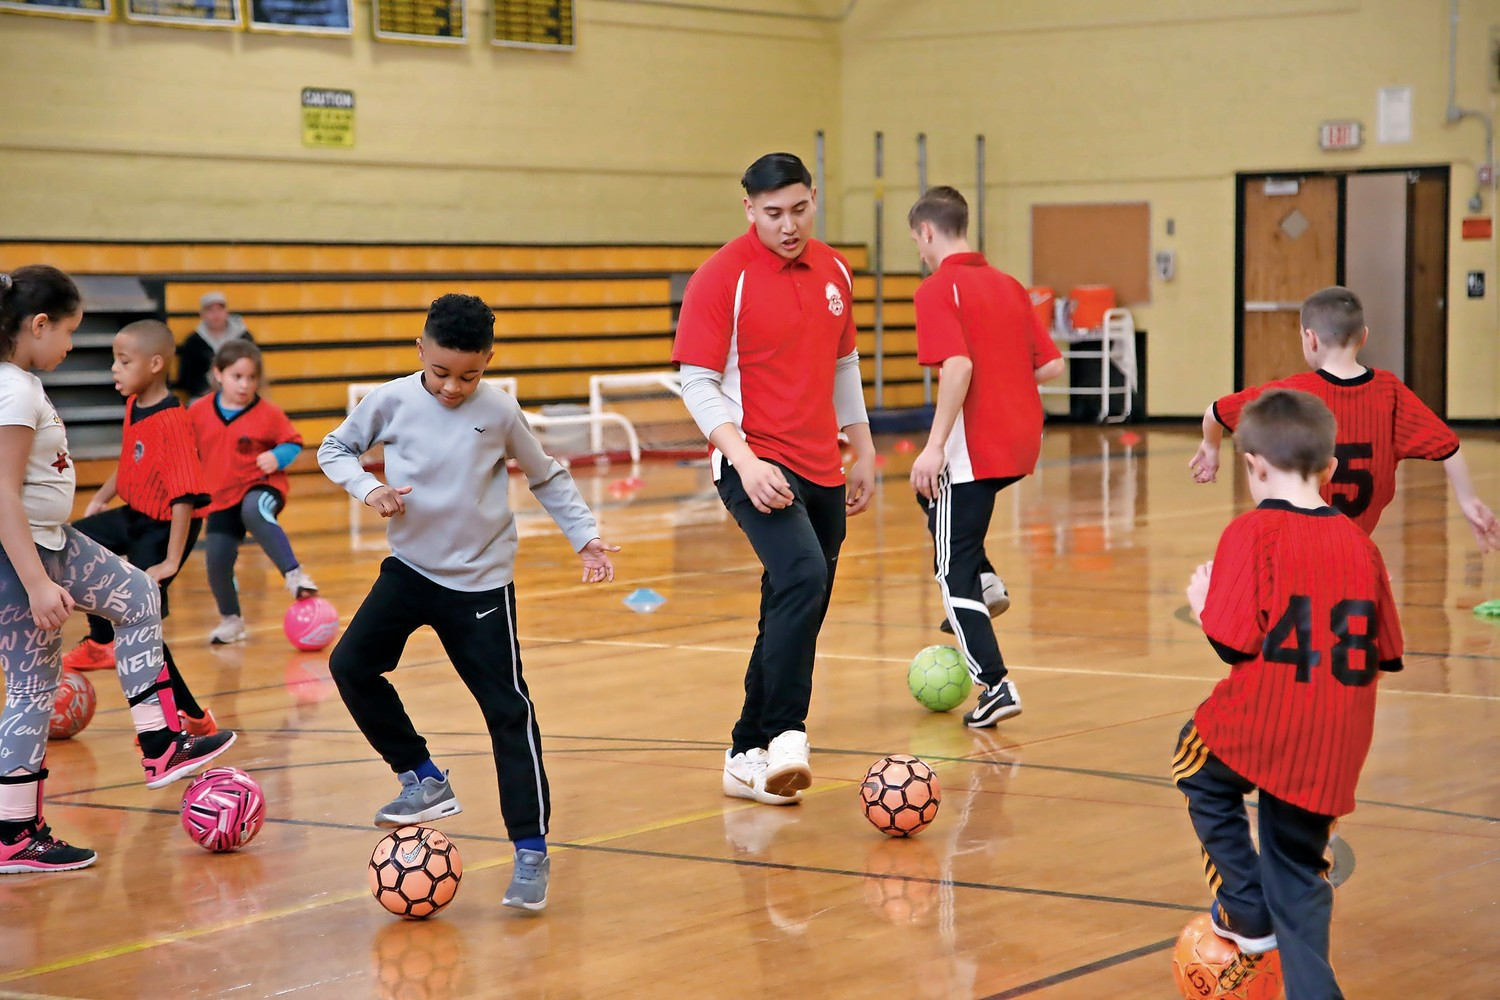 Children practice with the club two to three days each week to improve their skills.